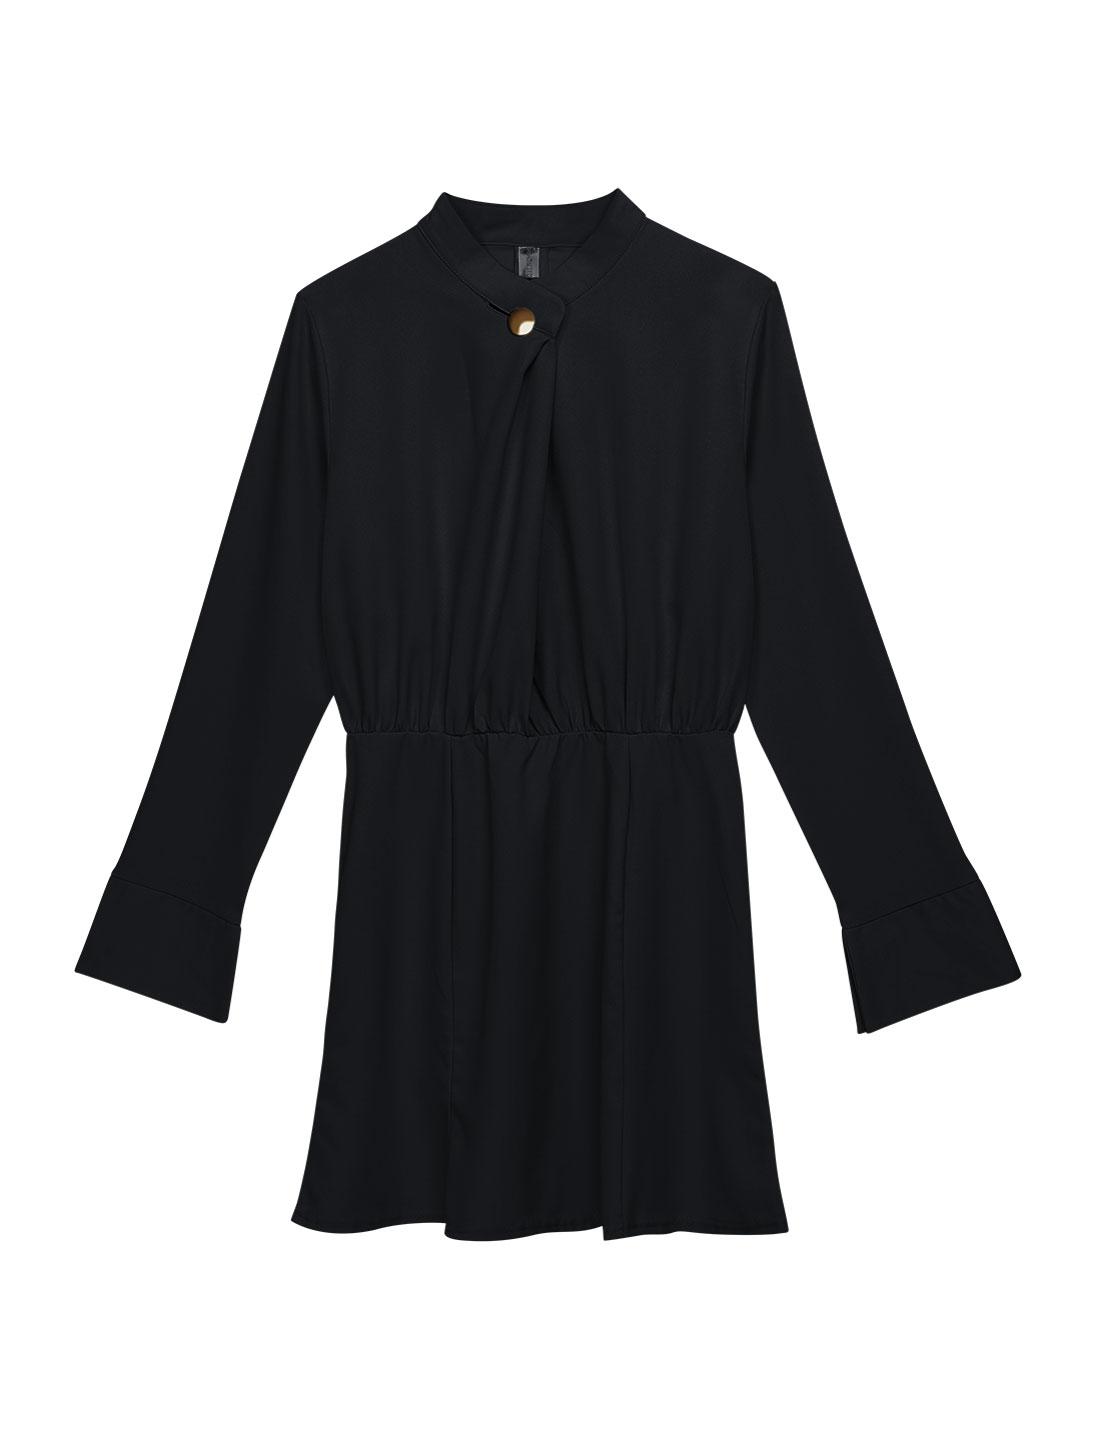 Women Stand Collar Long Sleeves One Button Closure A Line Dress Black M